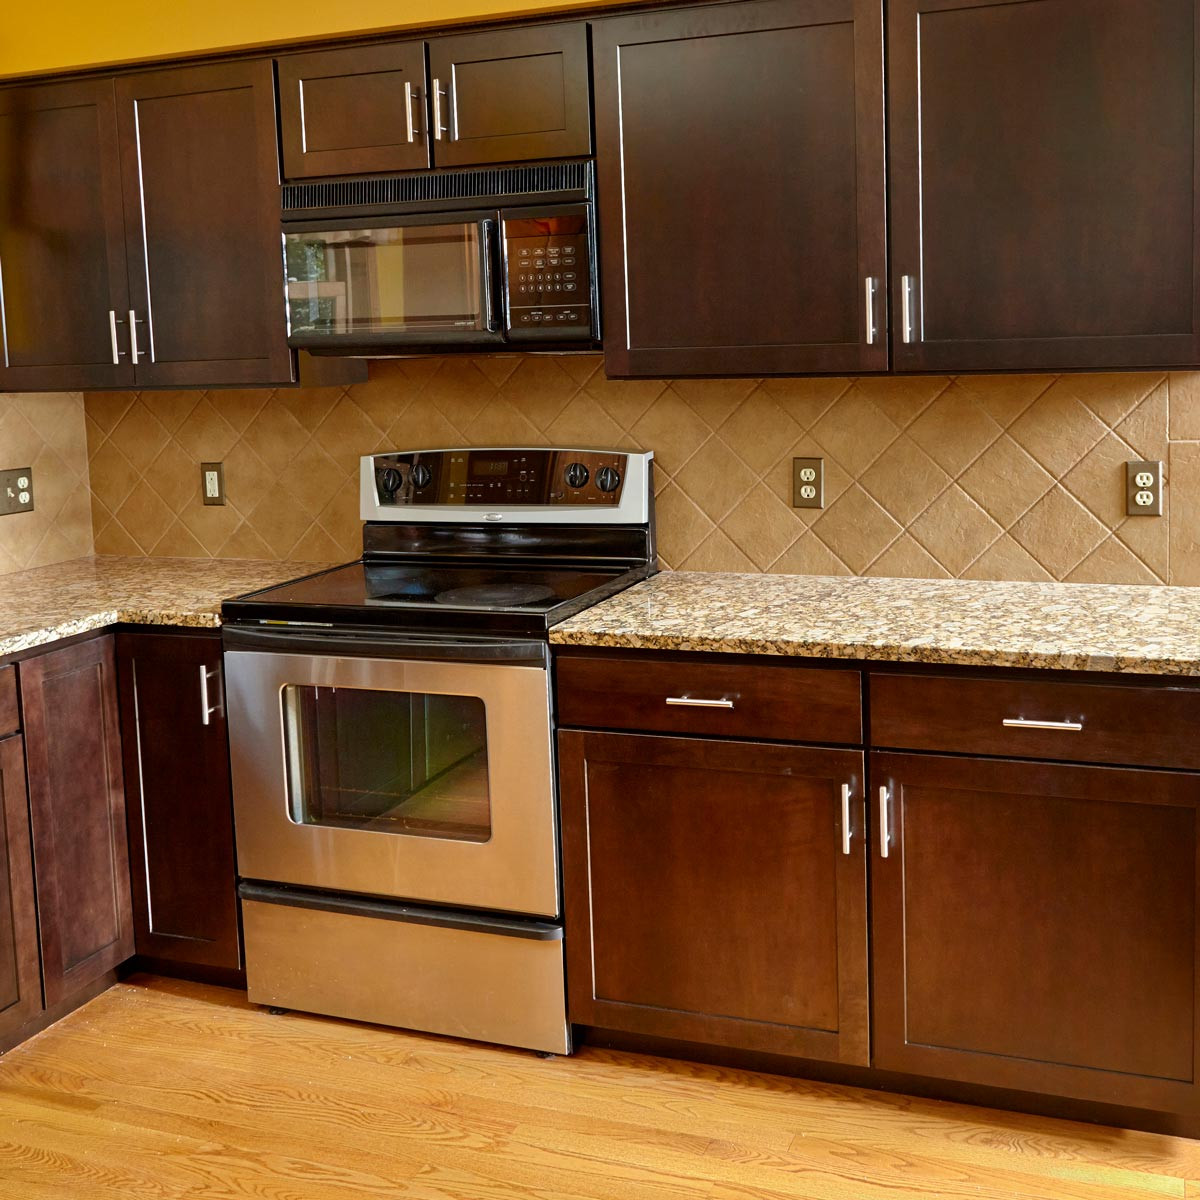 Best ideas about DIY Kitchen Cabinet Refinishing . Save or Pin Cabinet Refacing Now.